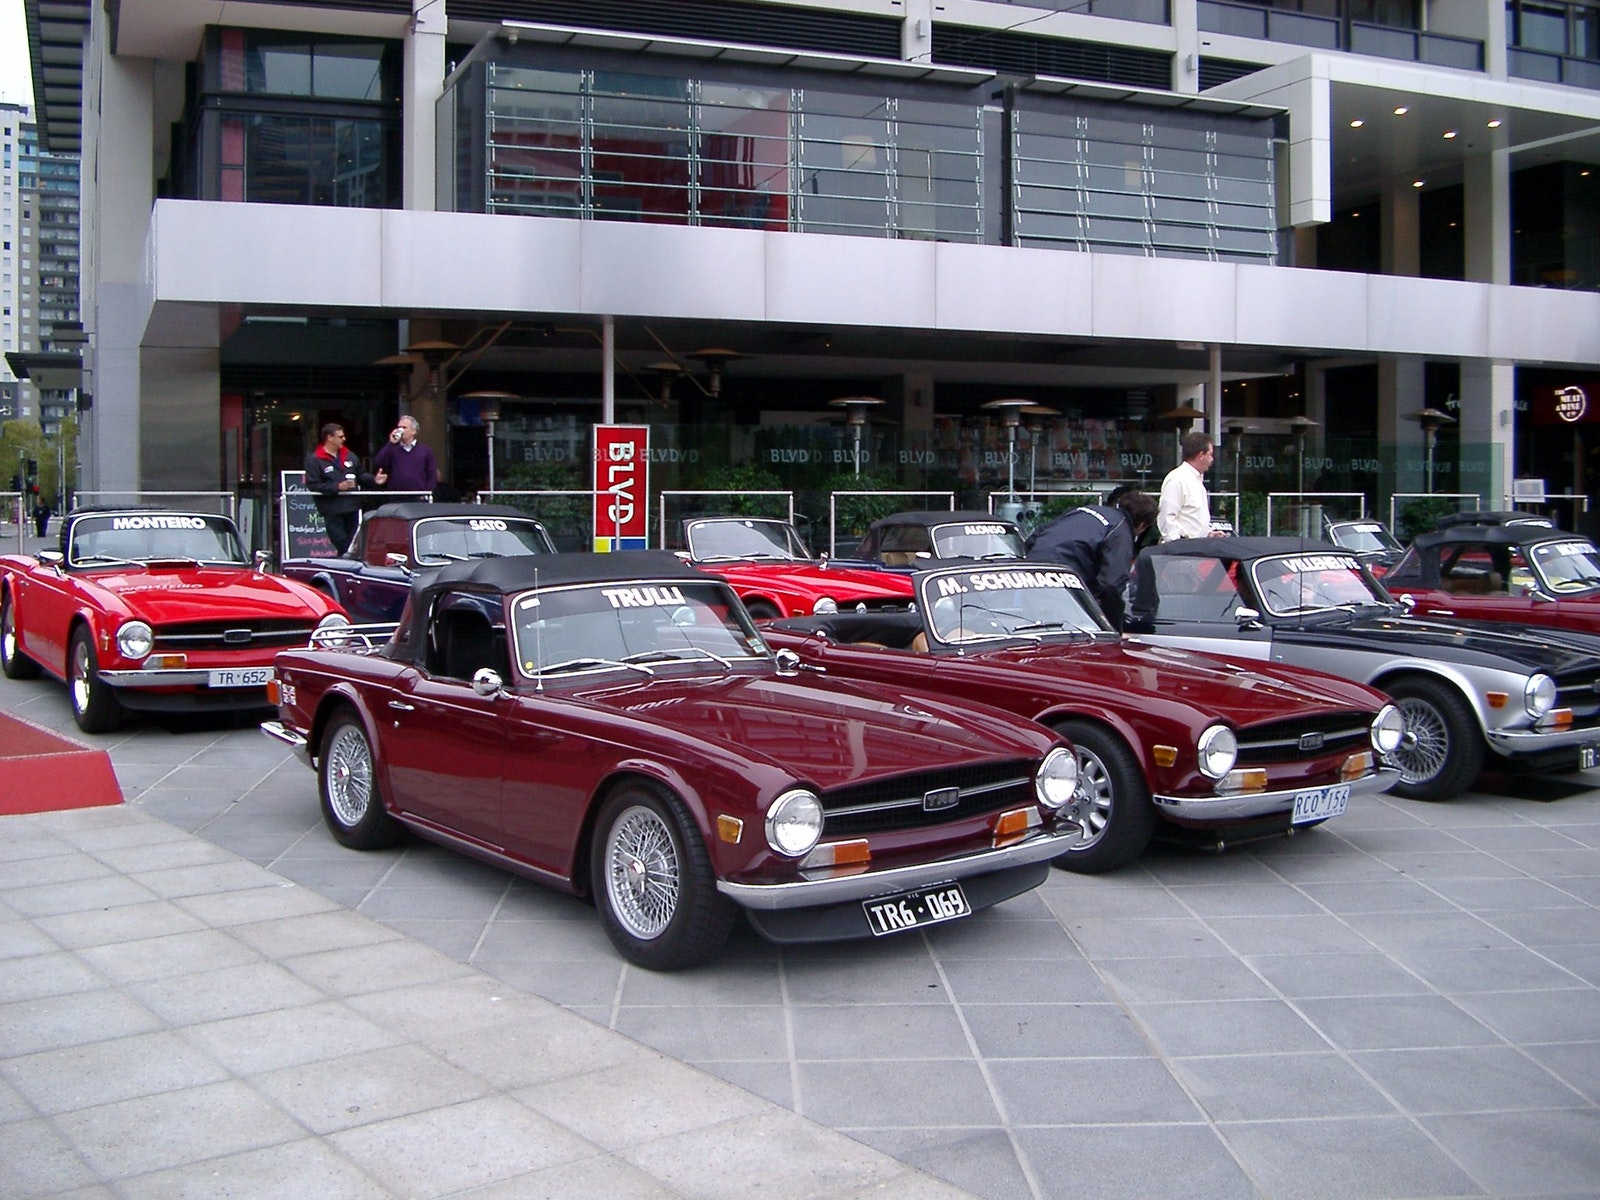 Each year interesting cars are used for the F1 driver's parade, It was the Triumph TR's turn in 2006